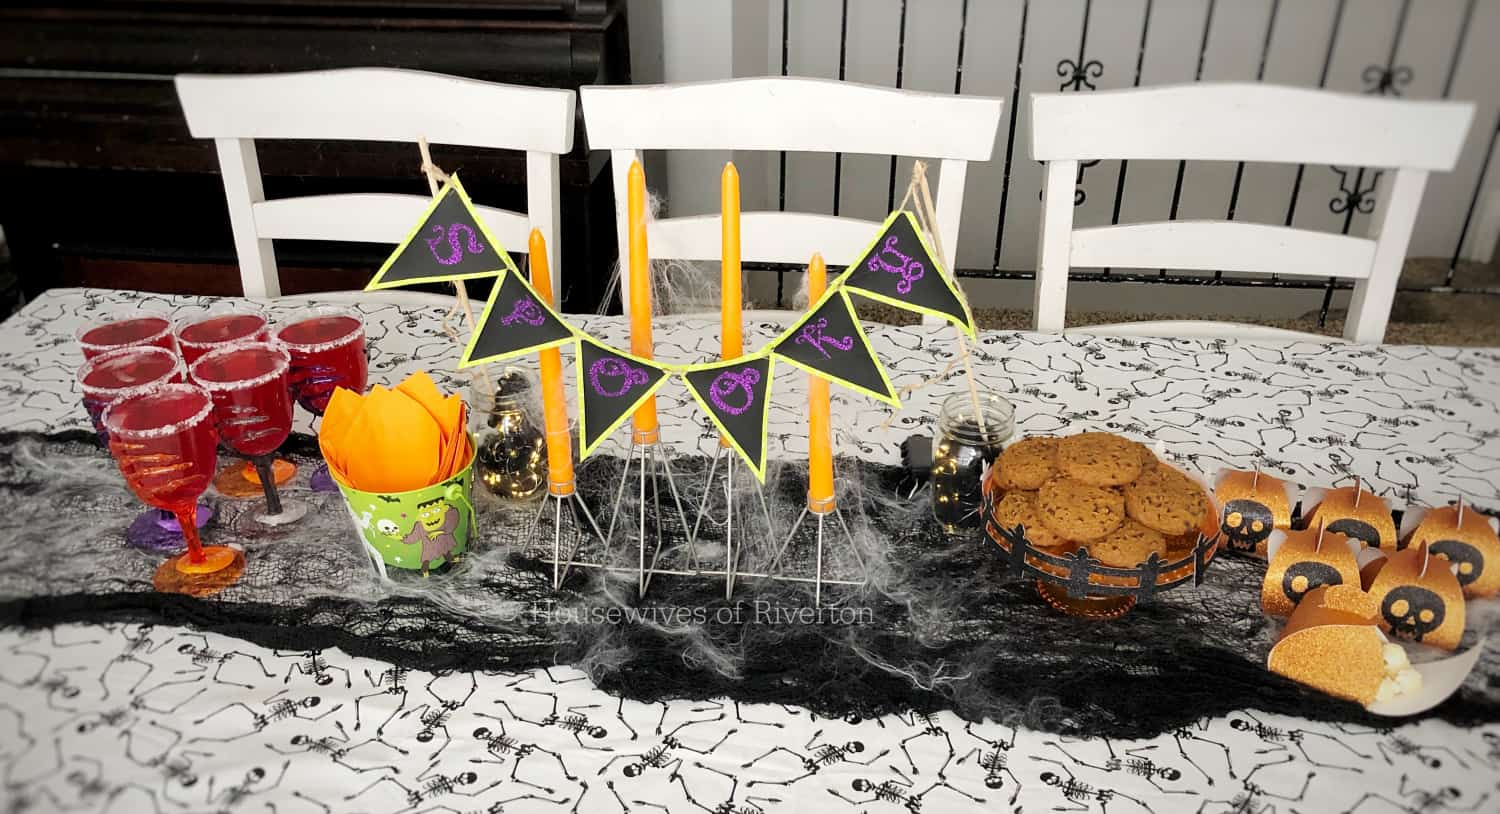 Easy Halloween Table Decor with Cricut | www.housewivesofriverton.com